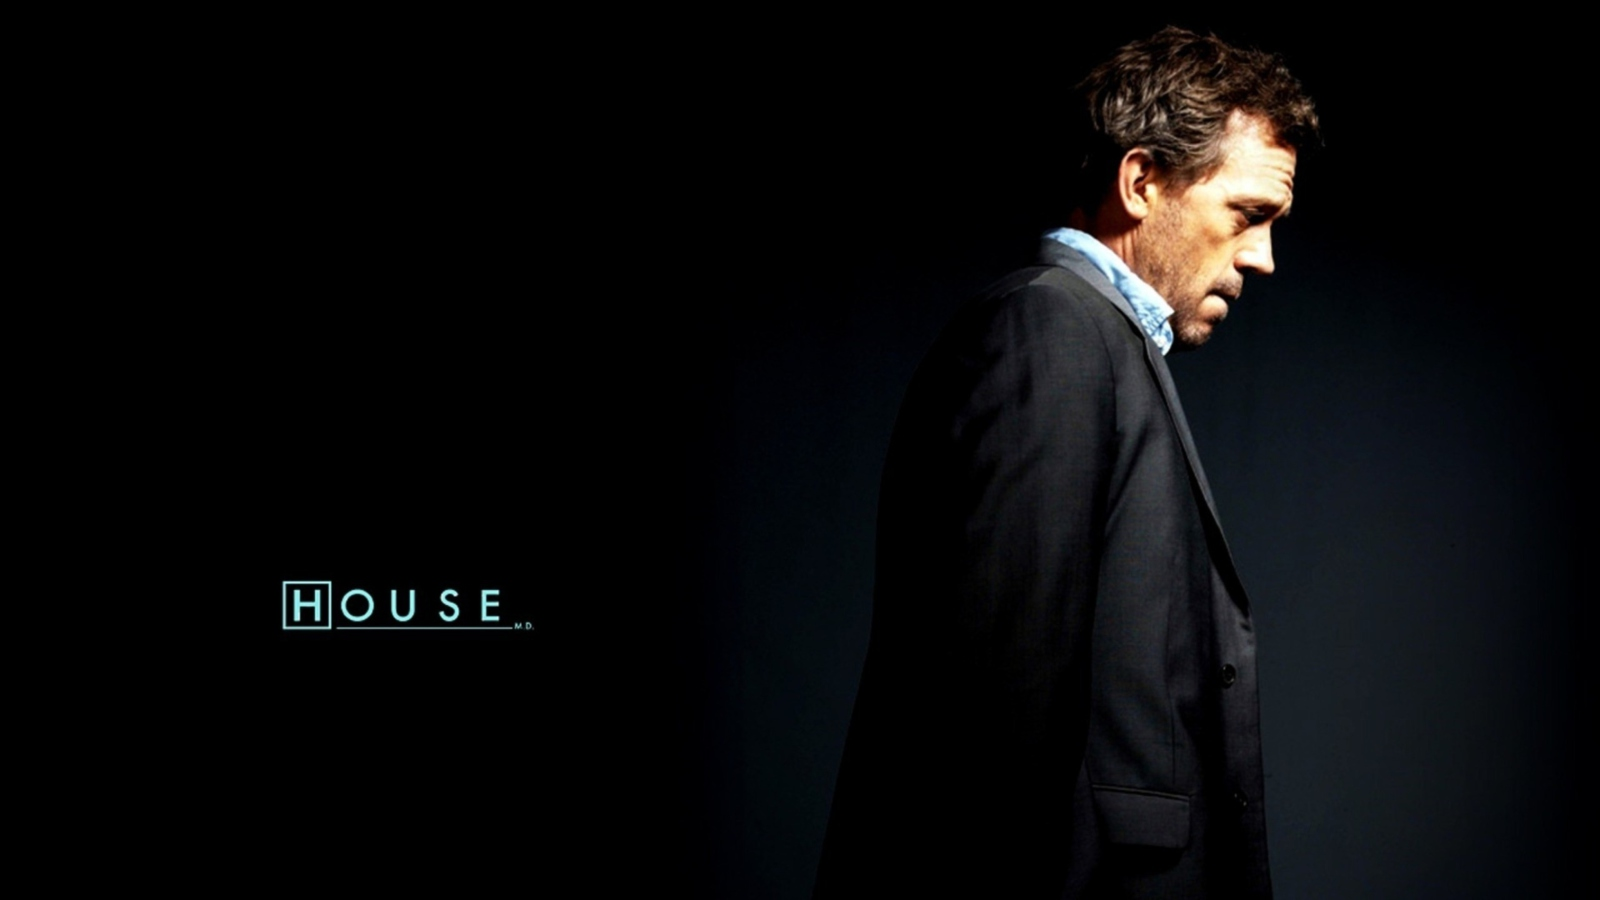 House M.D. screenshot #1 1600x900